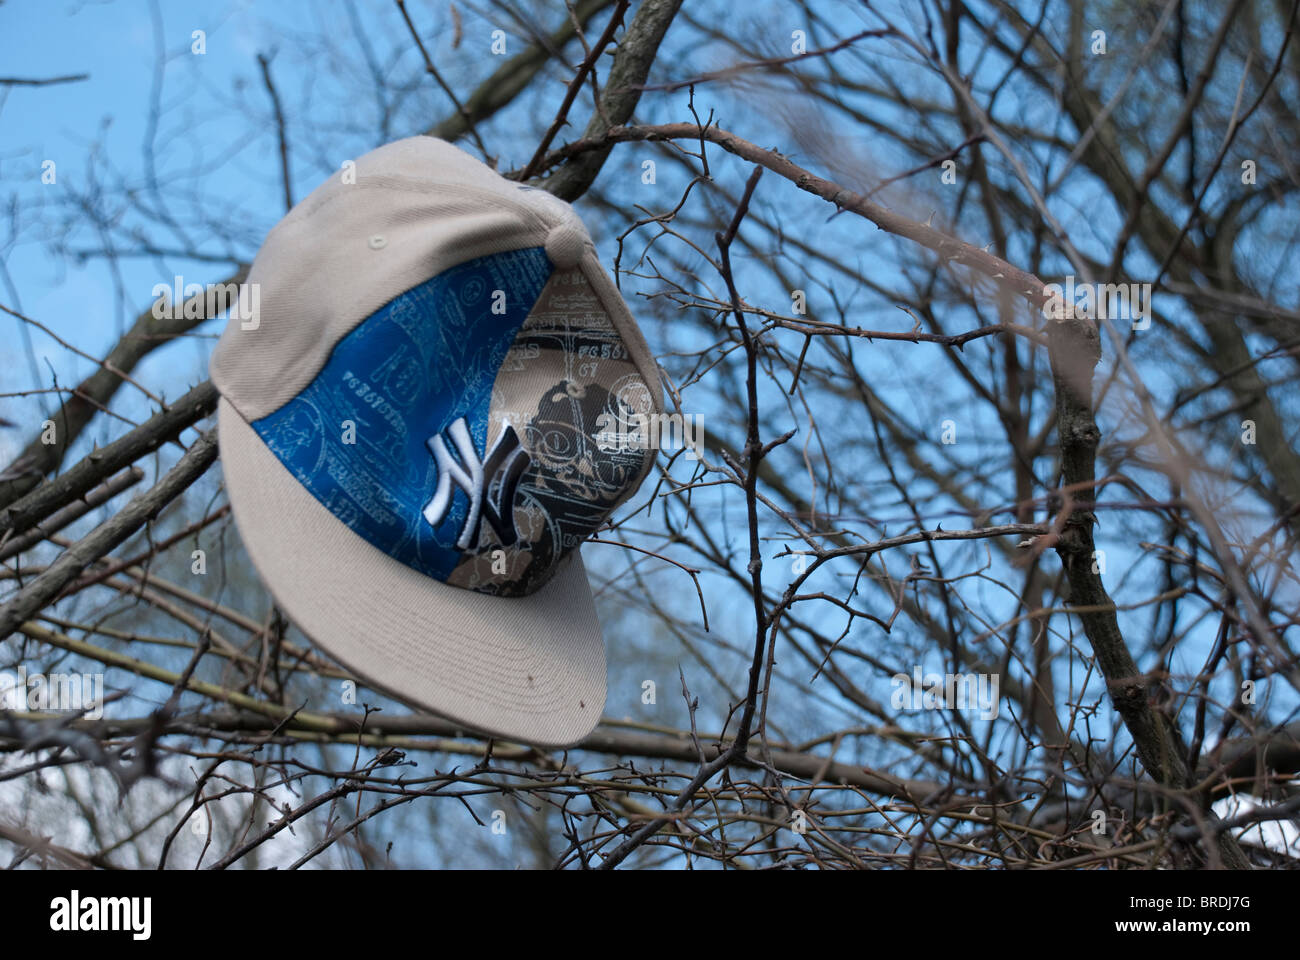 Lonely baseball cap - Stock Image